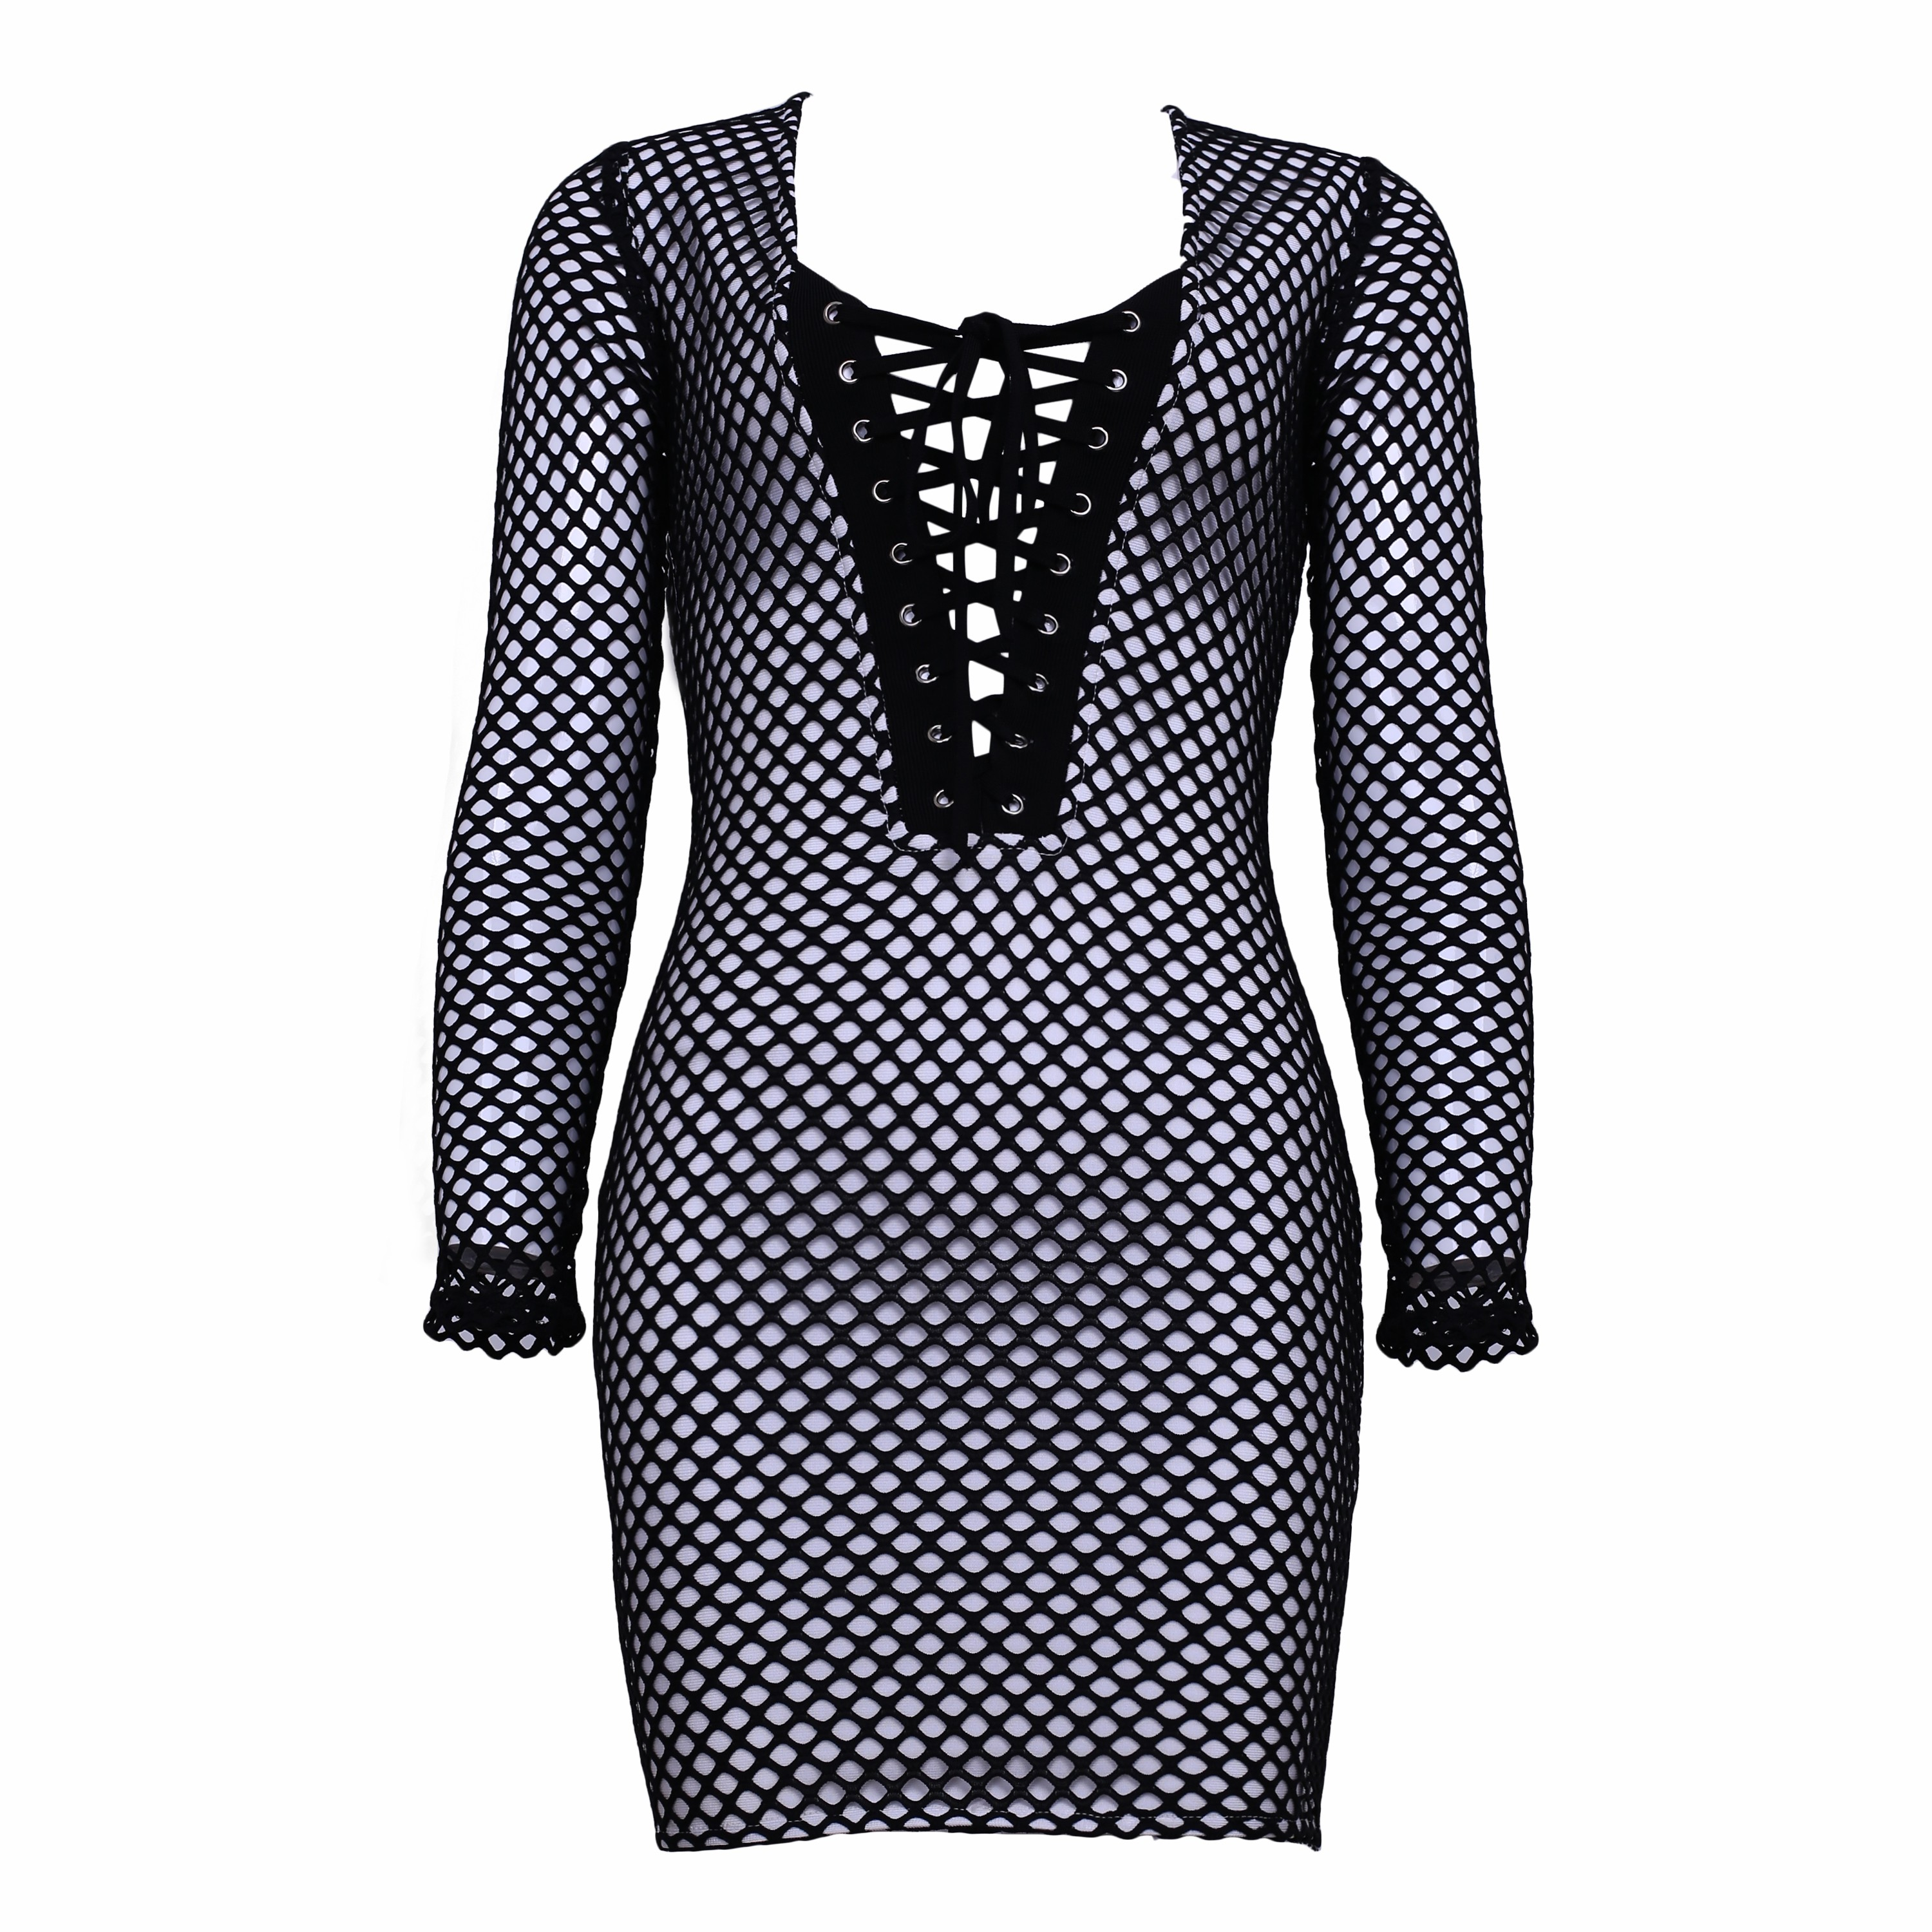 Rayon - Black Round Neck Long Sleeve Mini Cut Out Lace Up High Quality Bandage Dress HJ0270-Black